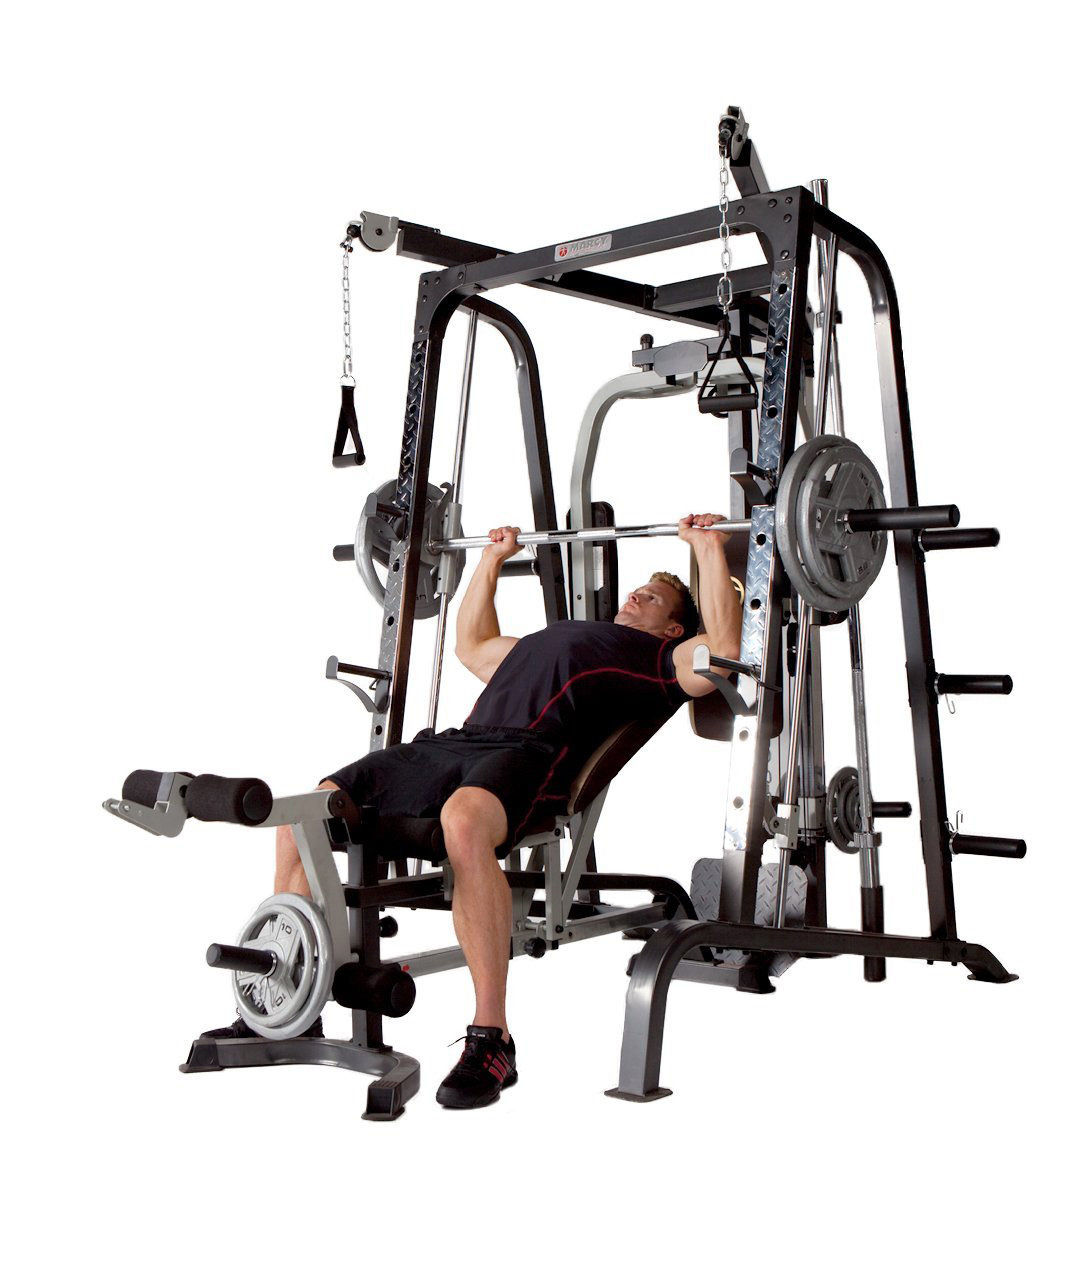 Deluxe Diamond Elite Smith Cage Total Body Gym